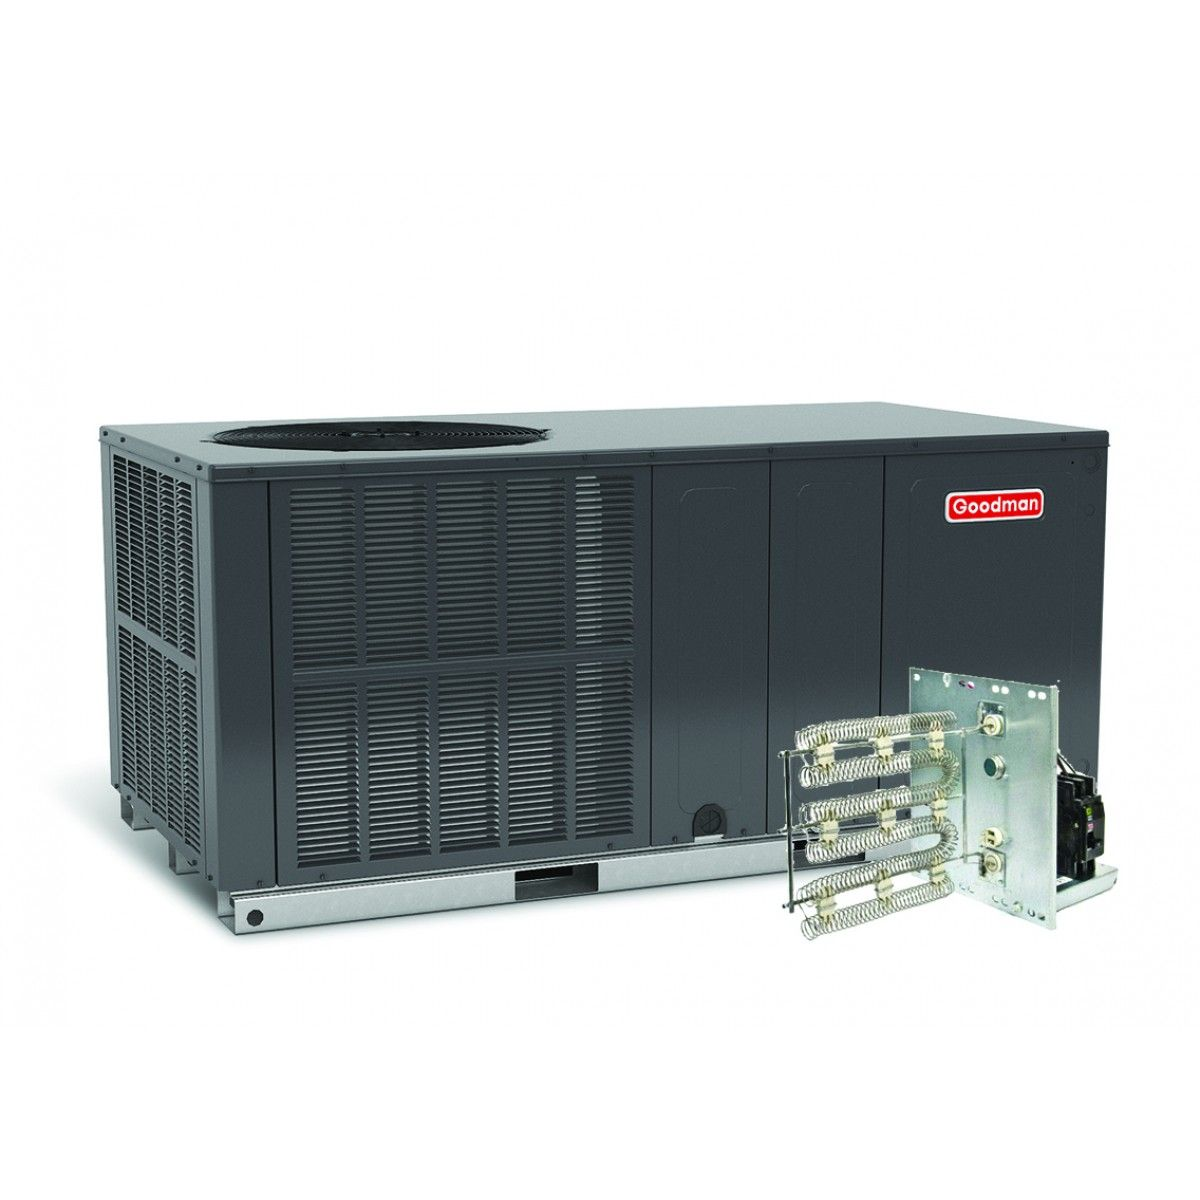 Goodman 30 Ton 14 Seer Electric Heat Package Unit Horizontal Outside A C Condenser Wiring Diagram Gpc1436h41c